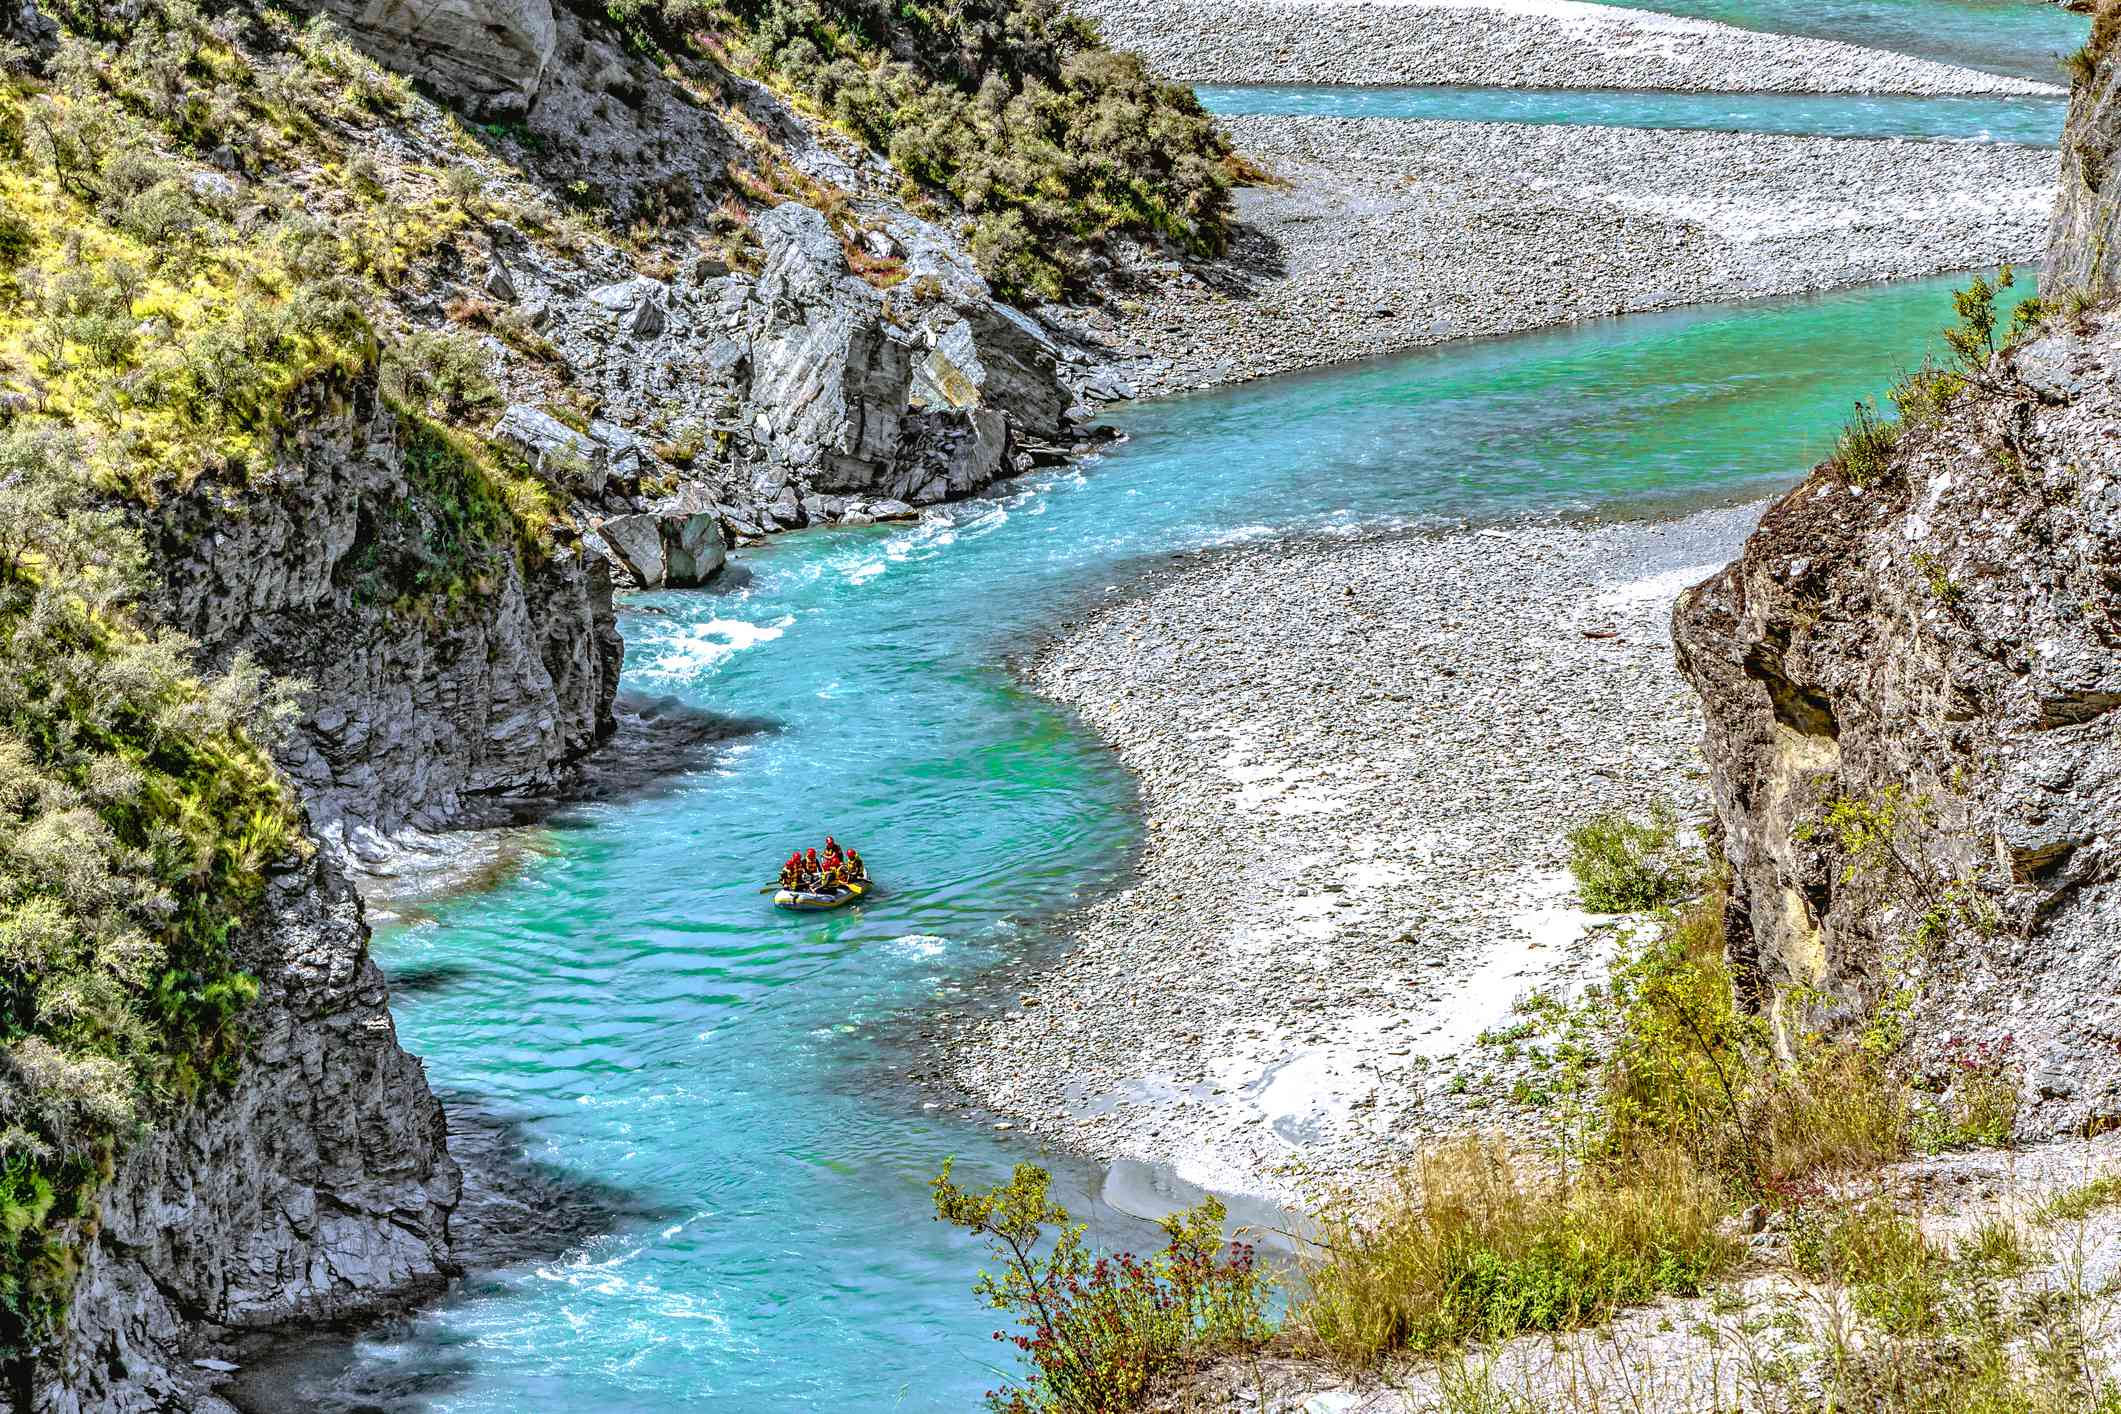 blue rivers with rafters floating along it